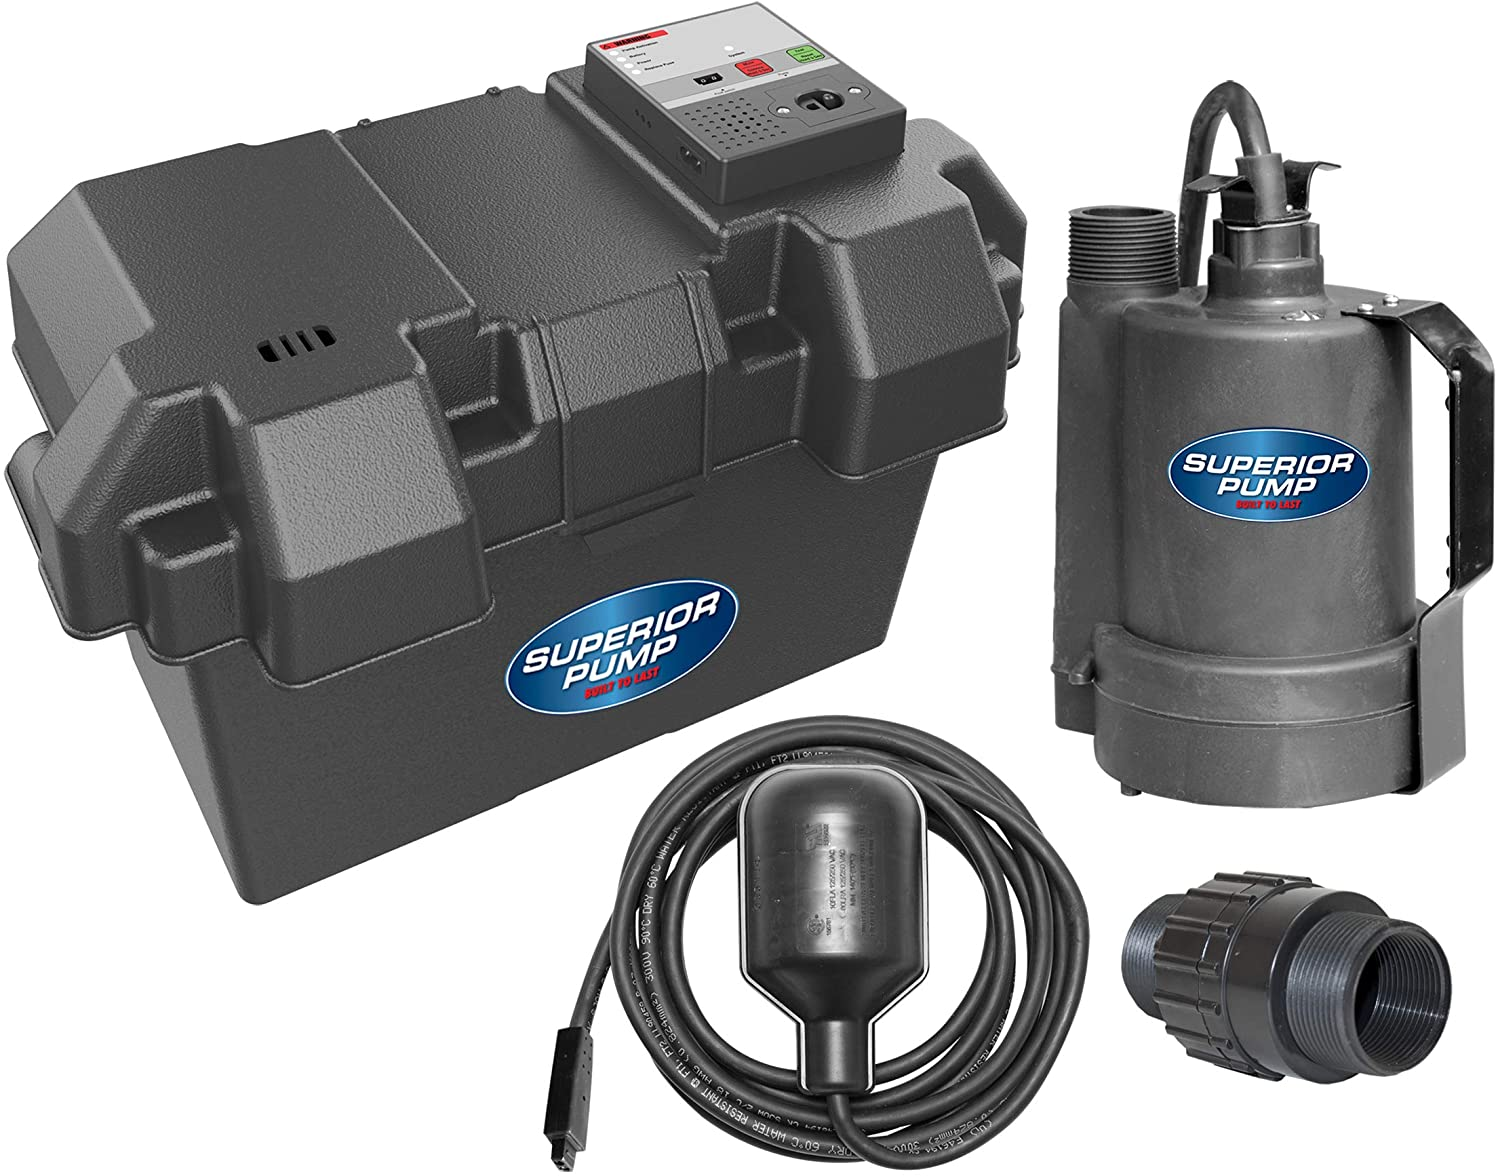 Superior Pump 92900 12V Battery Back Up Submersible Sump Pump with Tethered Switch